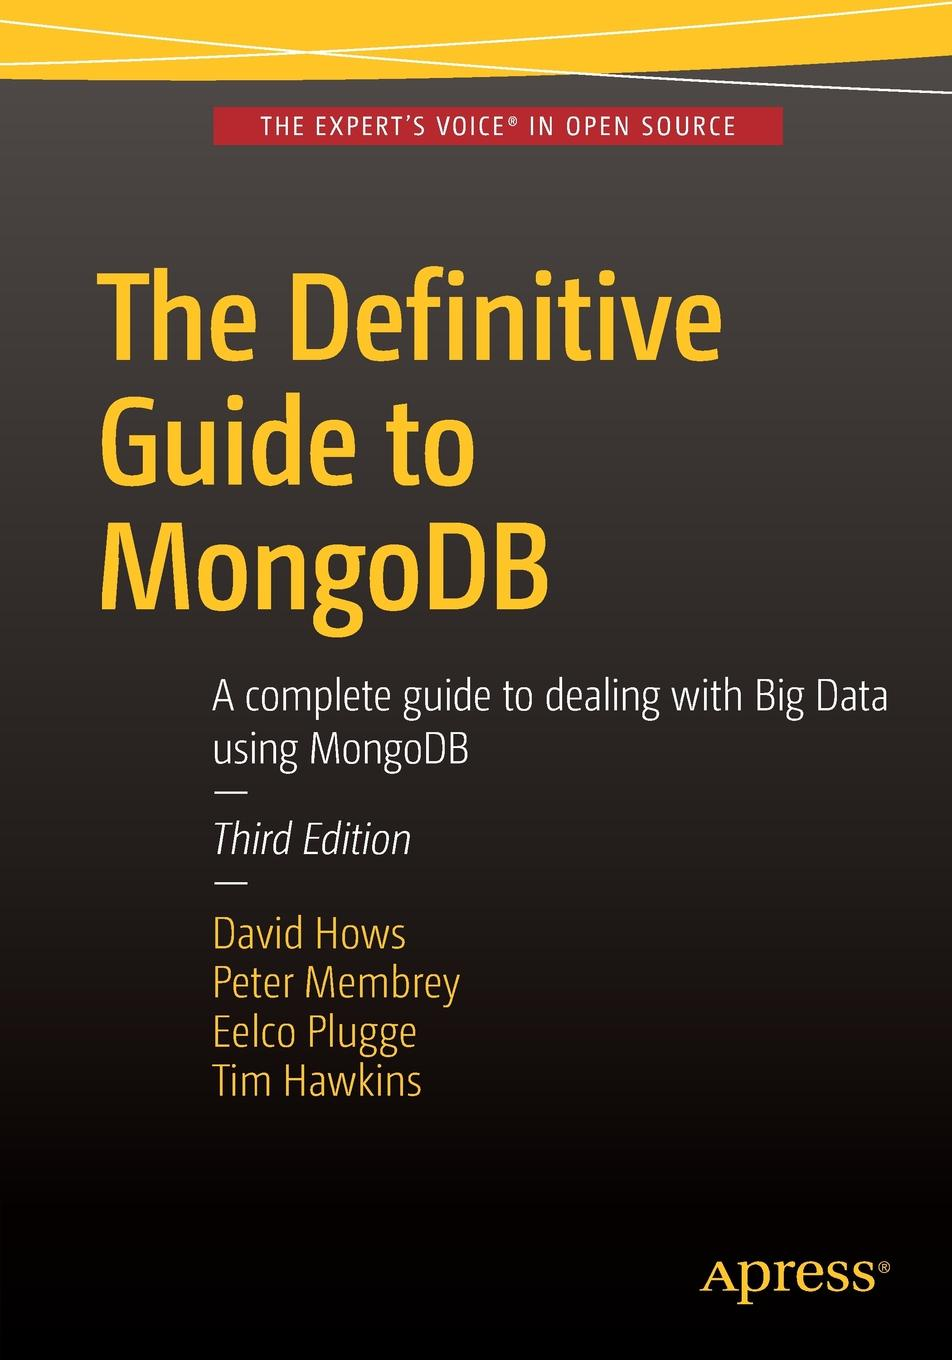 Eelco Plugge, David Hows, Peter Membrey The Definitive Guide to MongoDB. A complete guide to dealing with Big Data using MongoDB frederic brandt 10 minutes 10 years your definitive guide to a beautiful and youthful